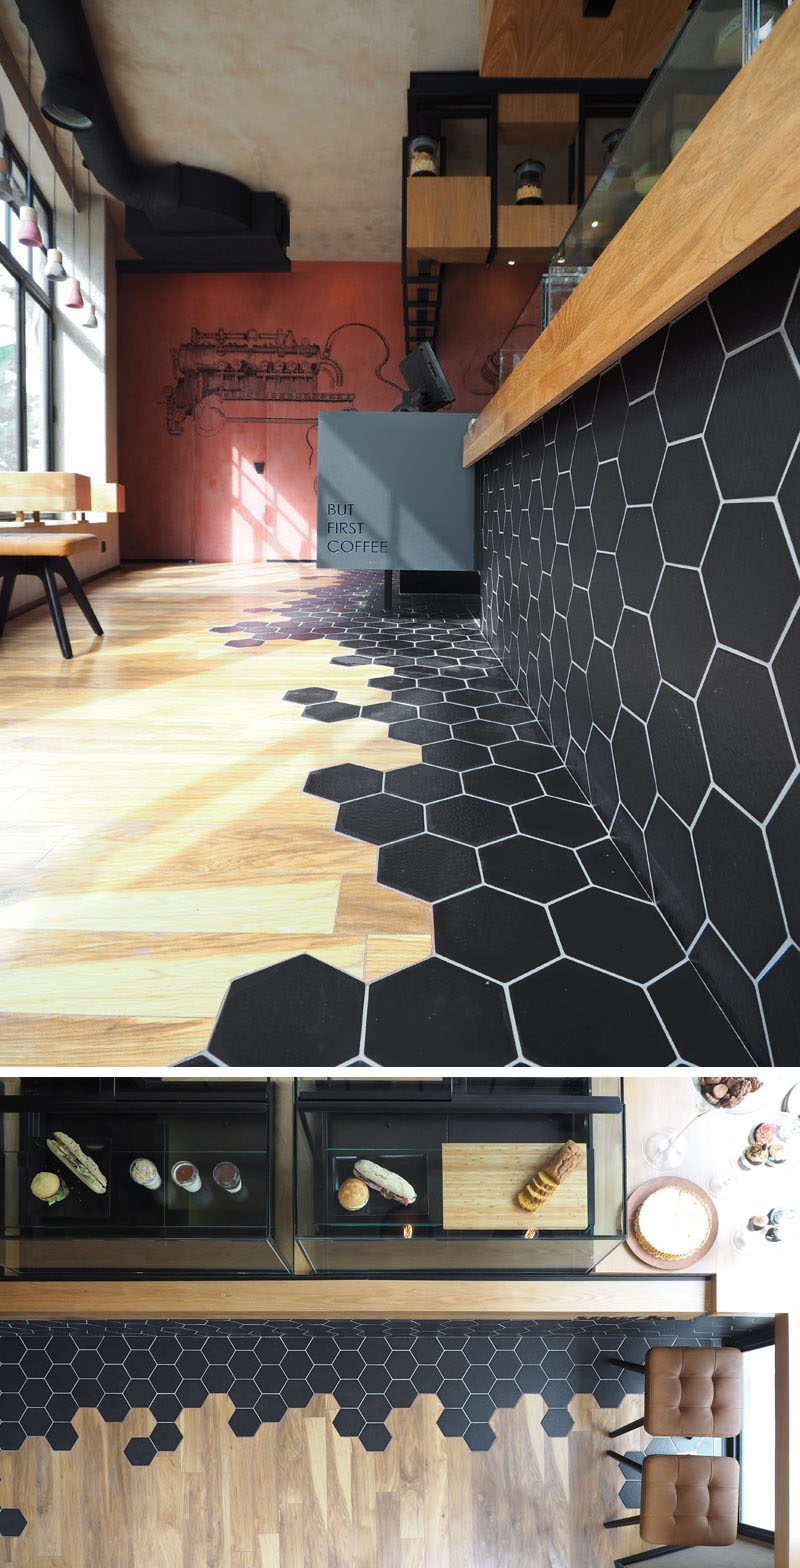 Captivating Black Hexagon Tiles This Hexagon Tiles Transition Into Wood Ing Inside This Cafe Black Hexagon Tile Kitchen Black Hexagon Tiles Nz Wood Laminate Ing Are A Design Element houzz-03 Black Hexagon Tile